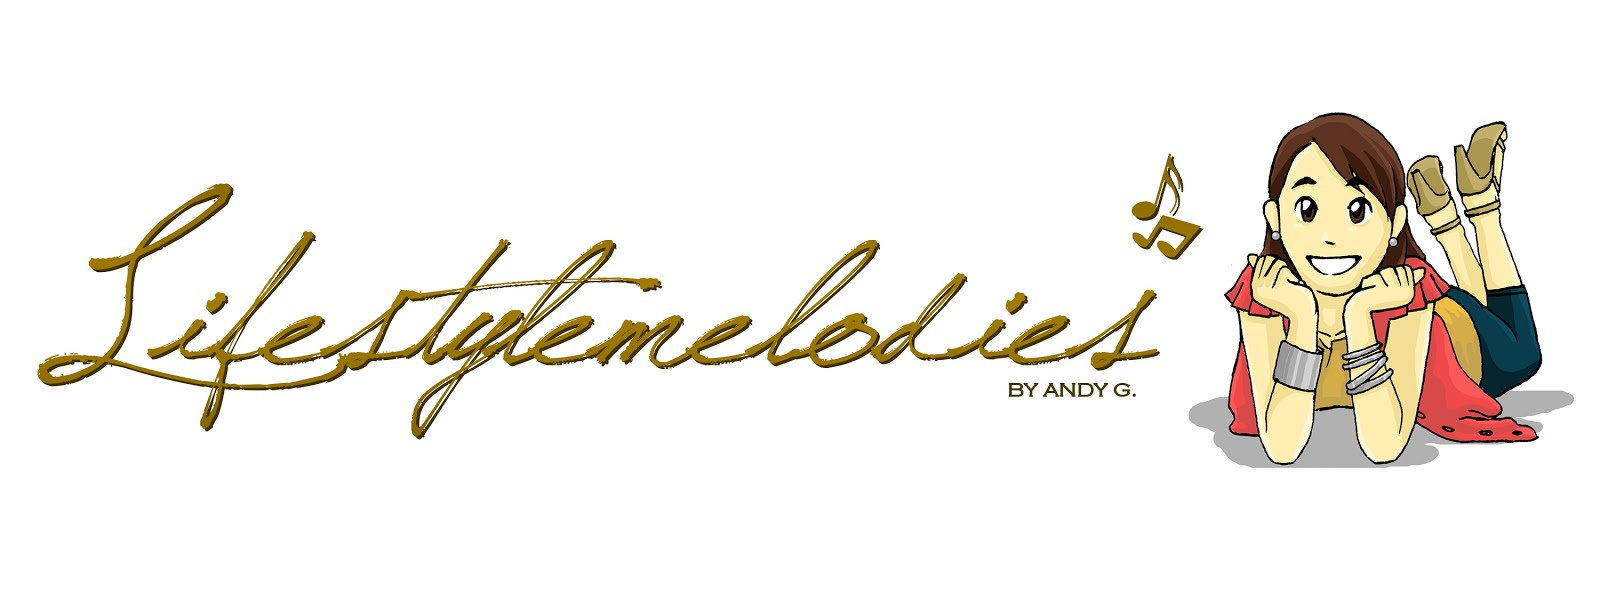 Lifestylemelodies